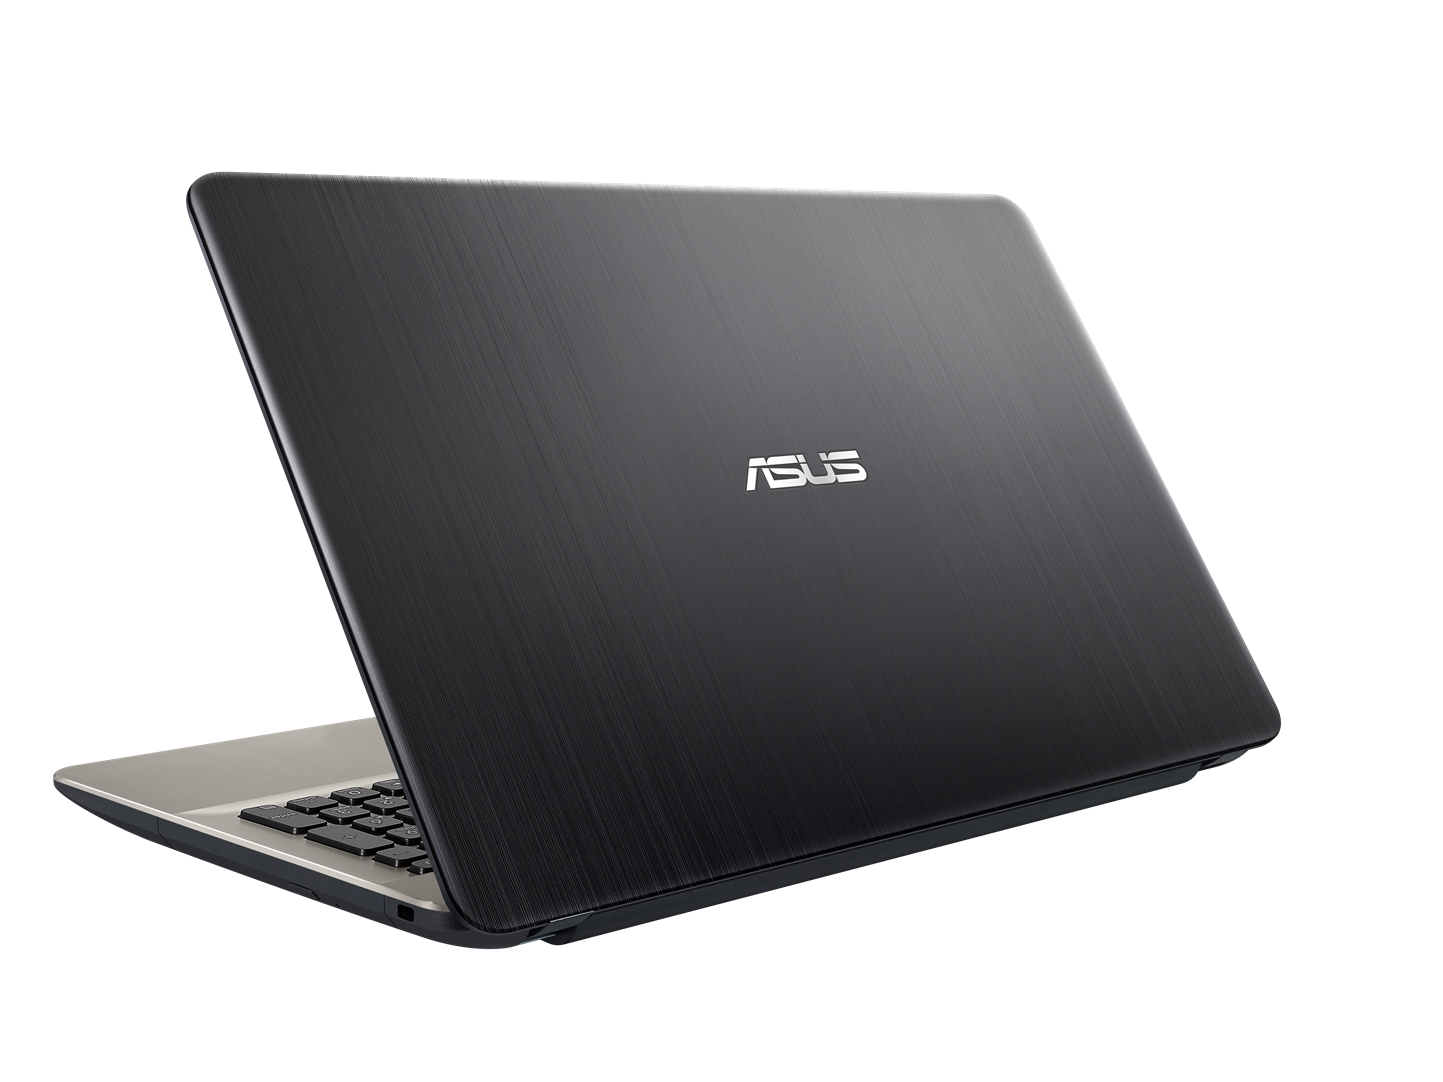 "ASUS X541UA-GQ1245T i3-6006U/4GB/1TB/DVDRW/HD graphics/15.6"" HD LED matný/W10 Home/Black/black&gold"